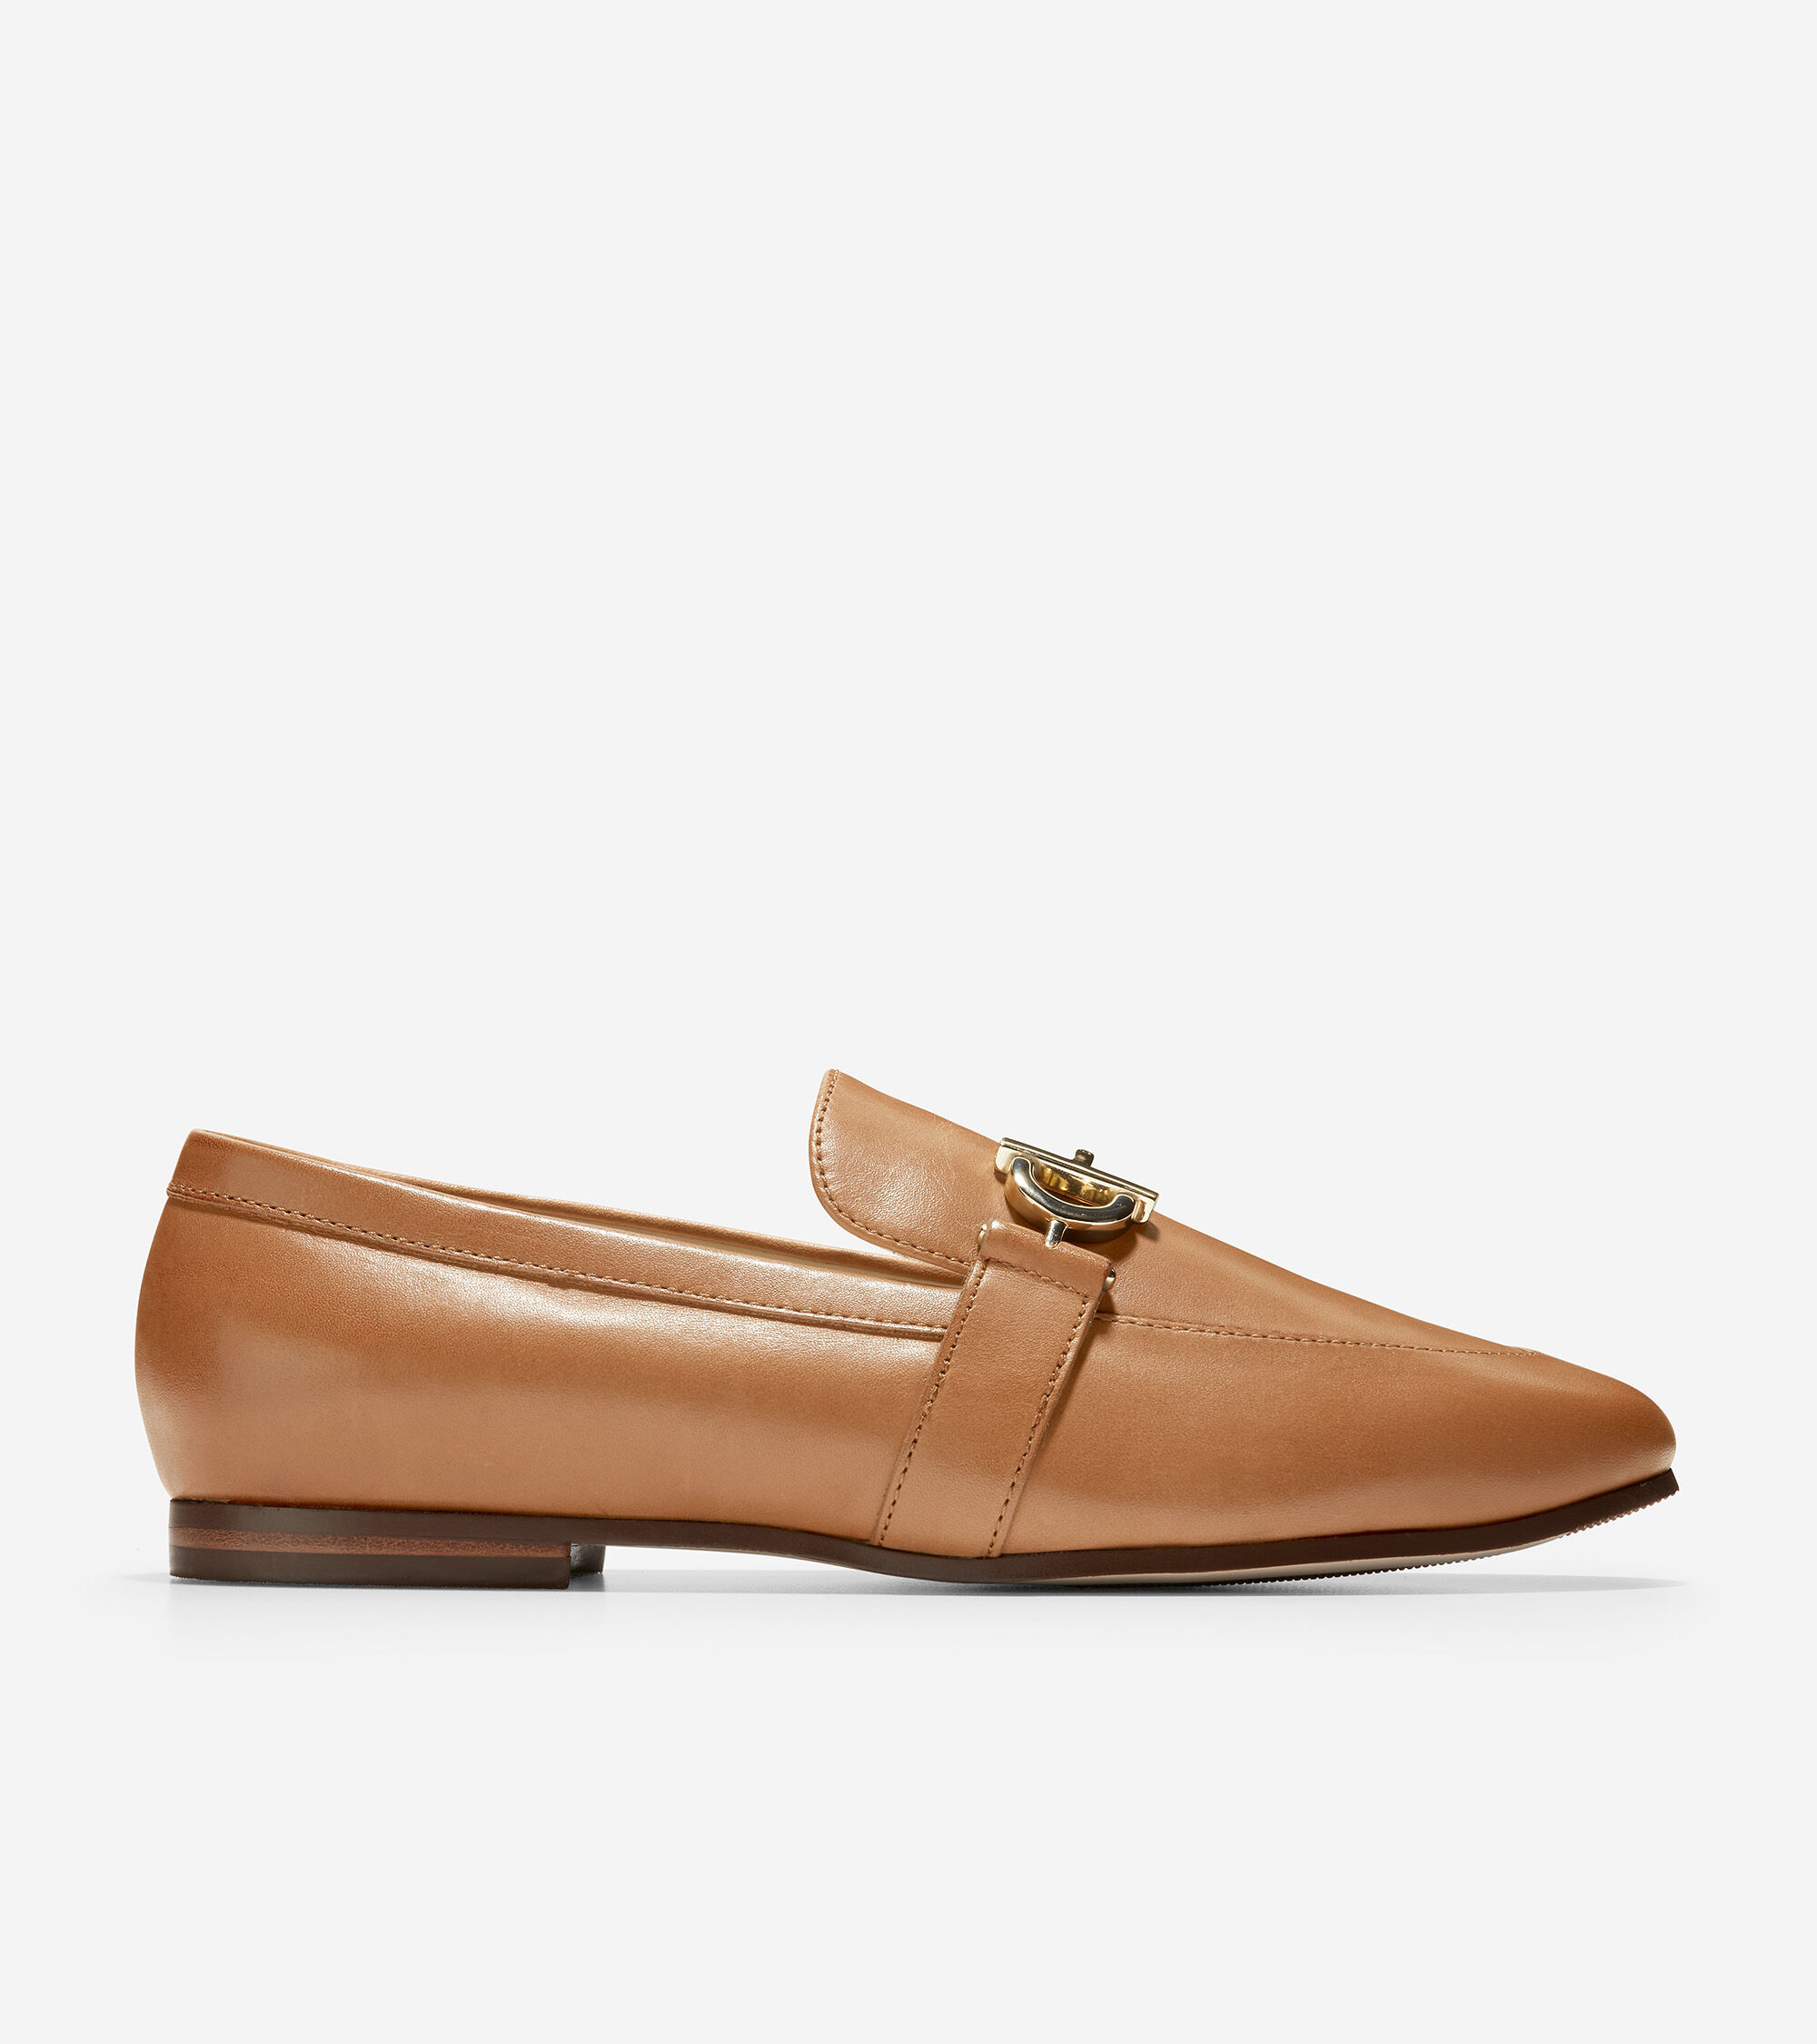 Women's Loafers \u0026 Driving Shoes | Cole Haan